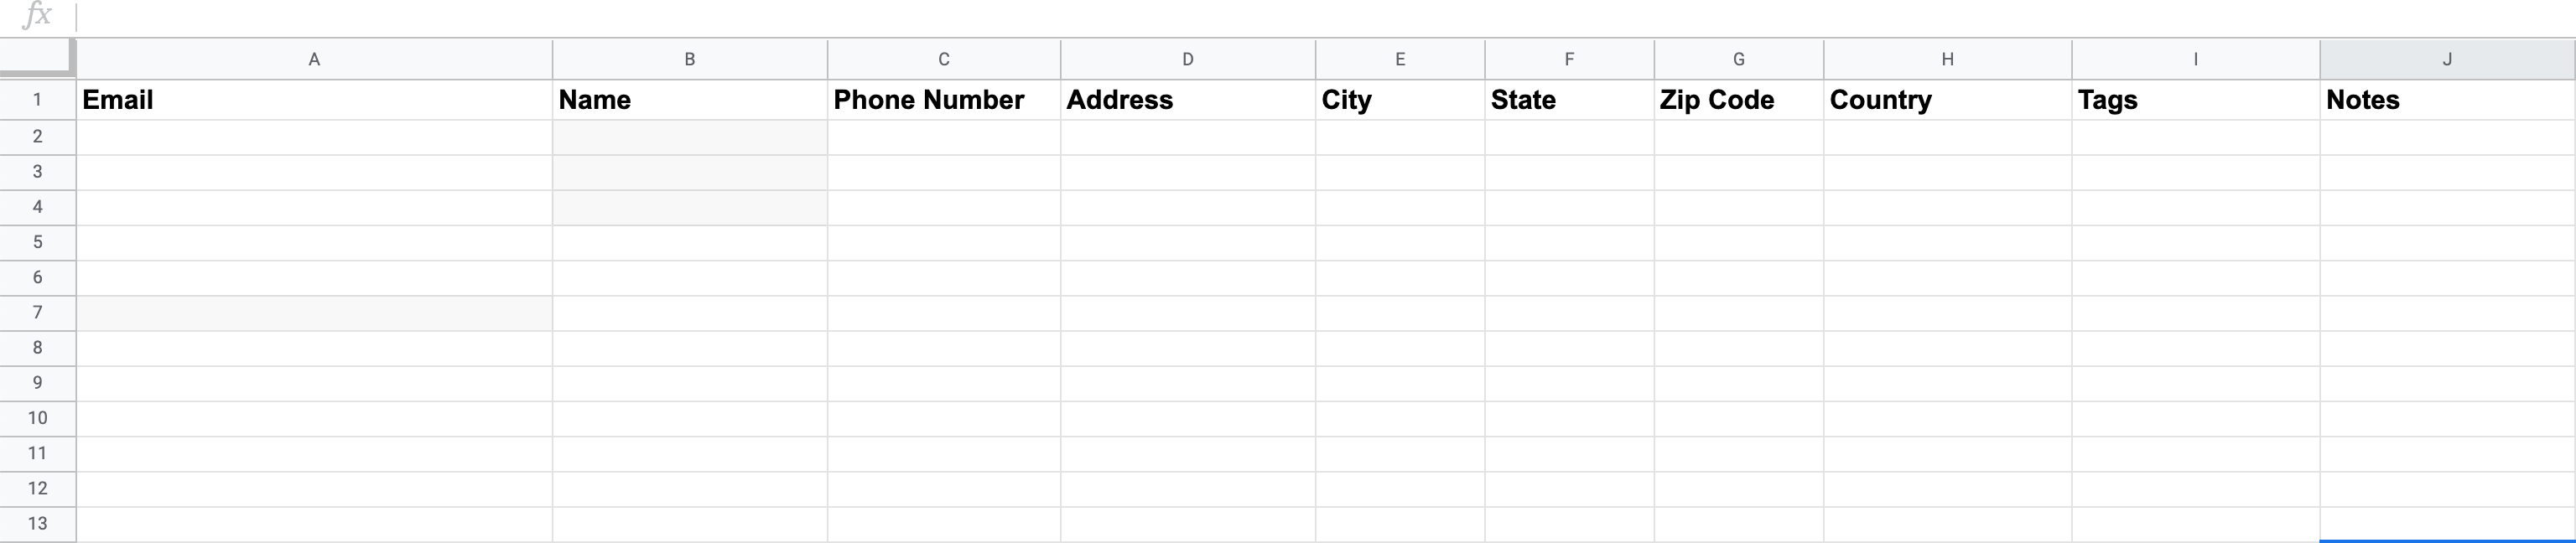 Import_template_-_Google_Sheets-4.png